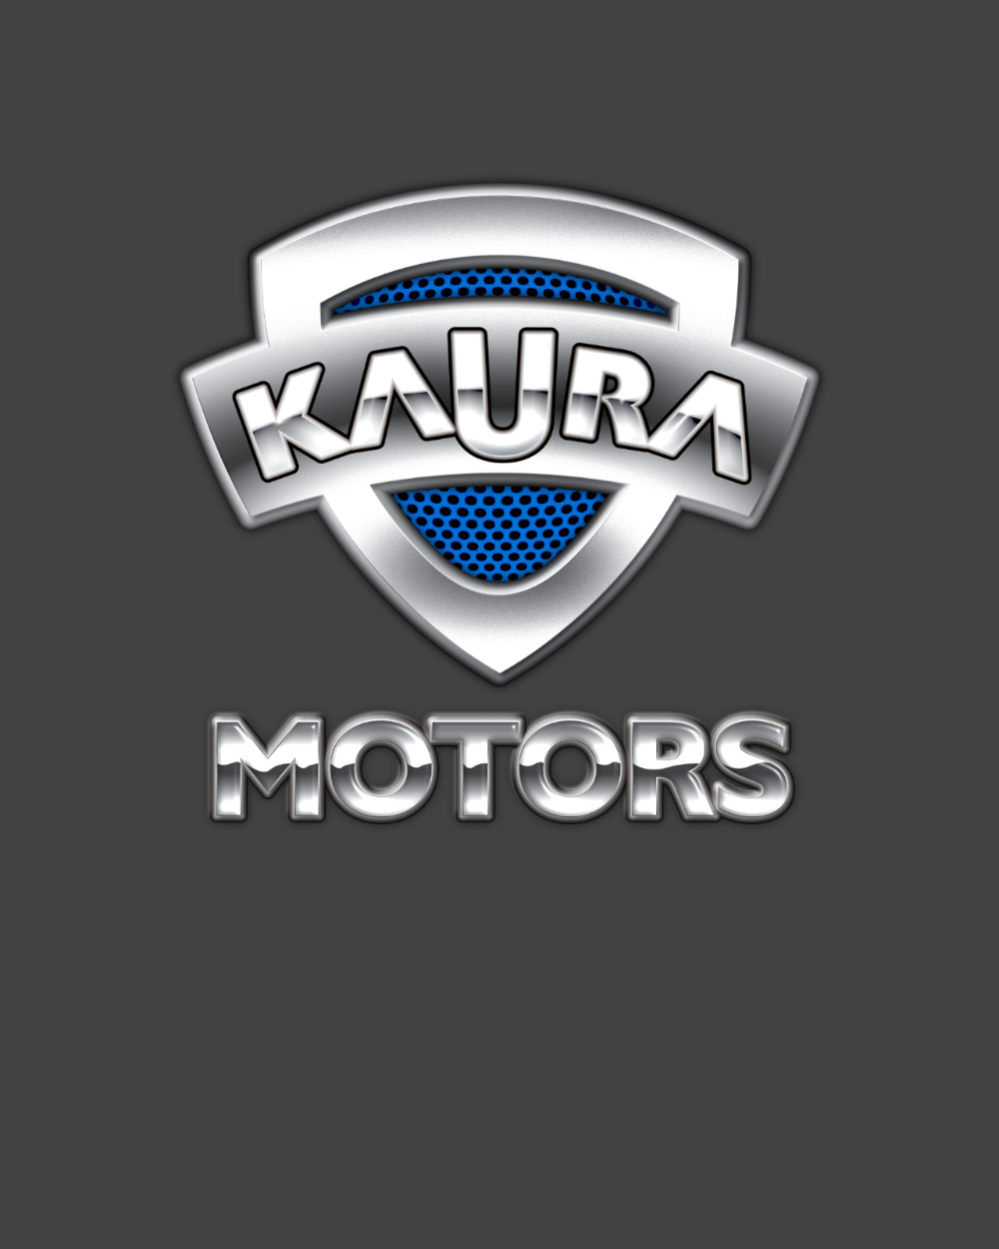 Kaura-Staff-Photo-not-available